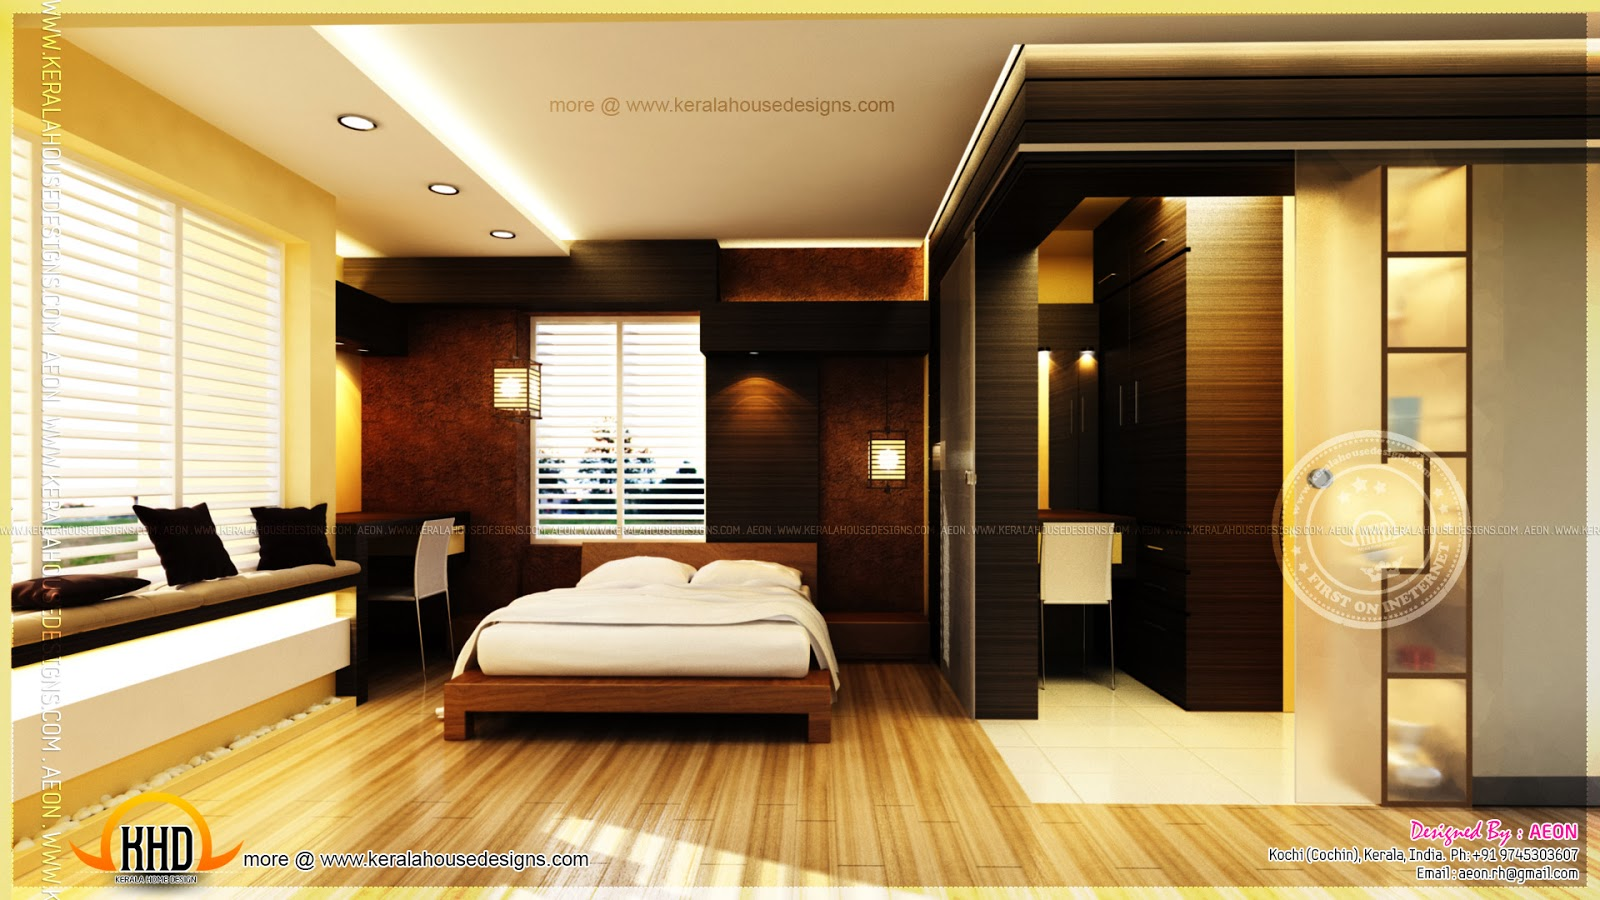 Apartment Interior Designs By Aeon Cochin Kerala Home Design And Floor Plans